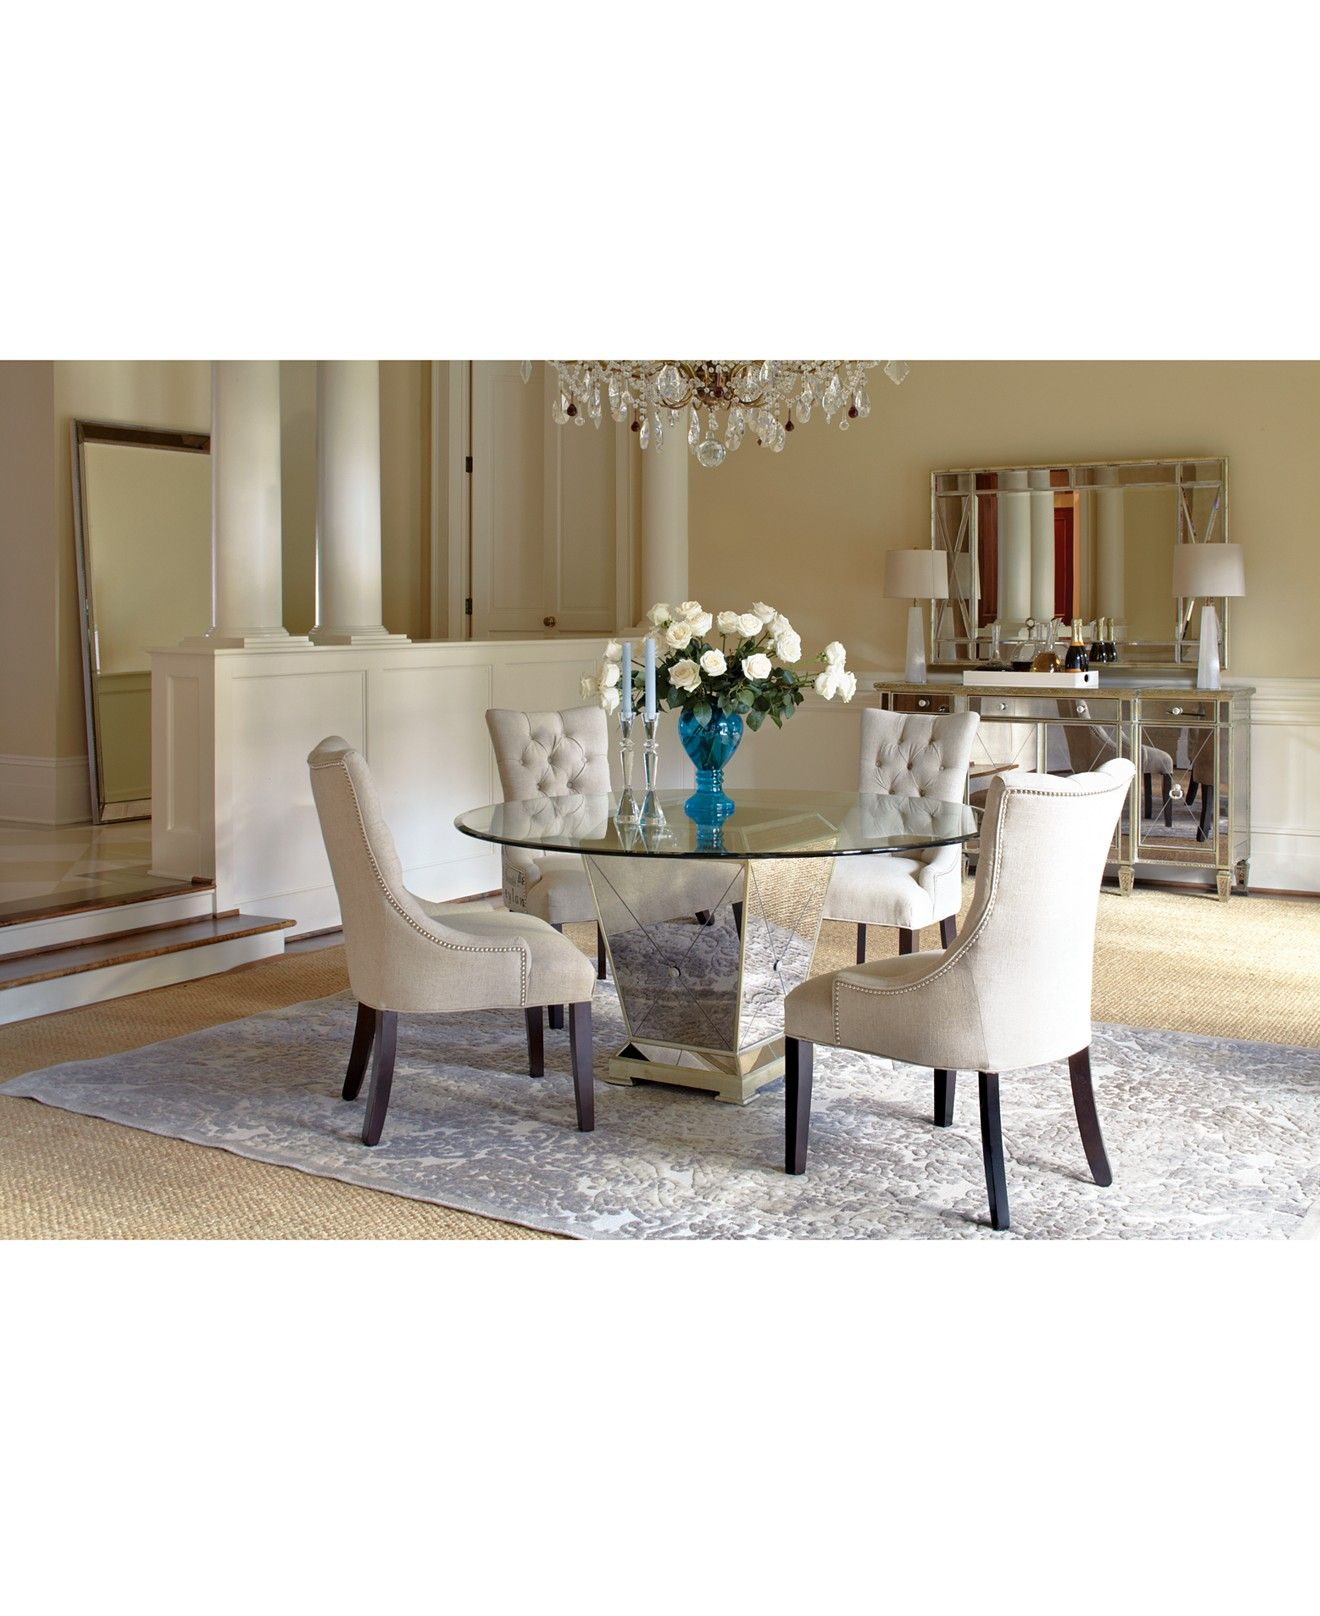 Marais Dining Room Furniture Collection Mirrored Furniture - Macys dining room sets